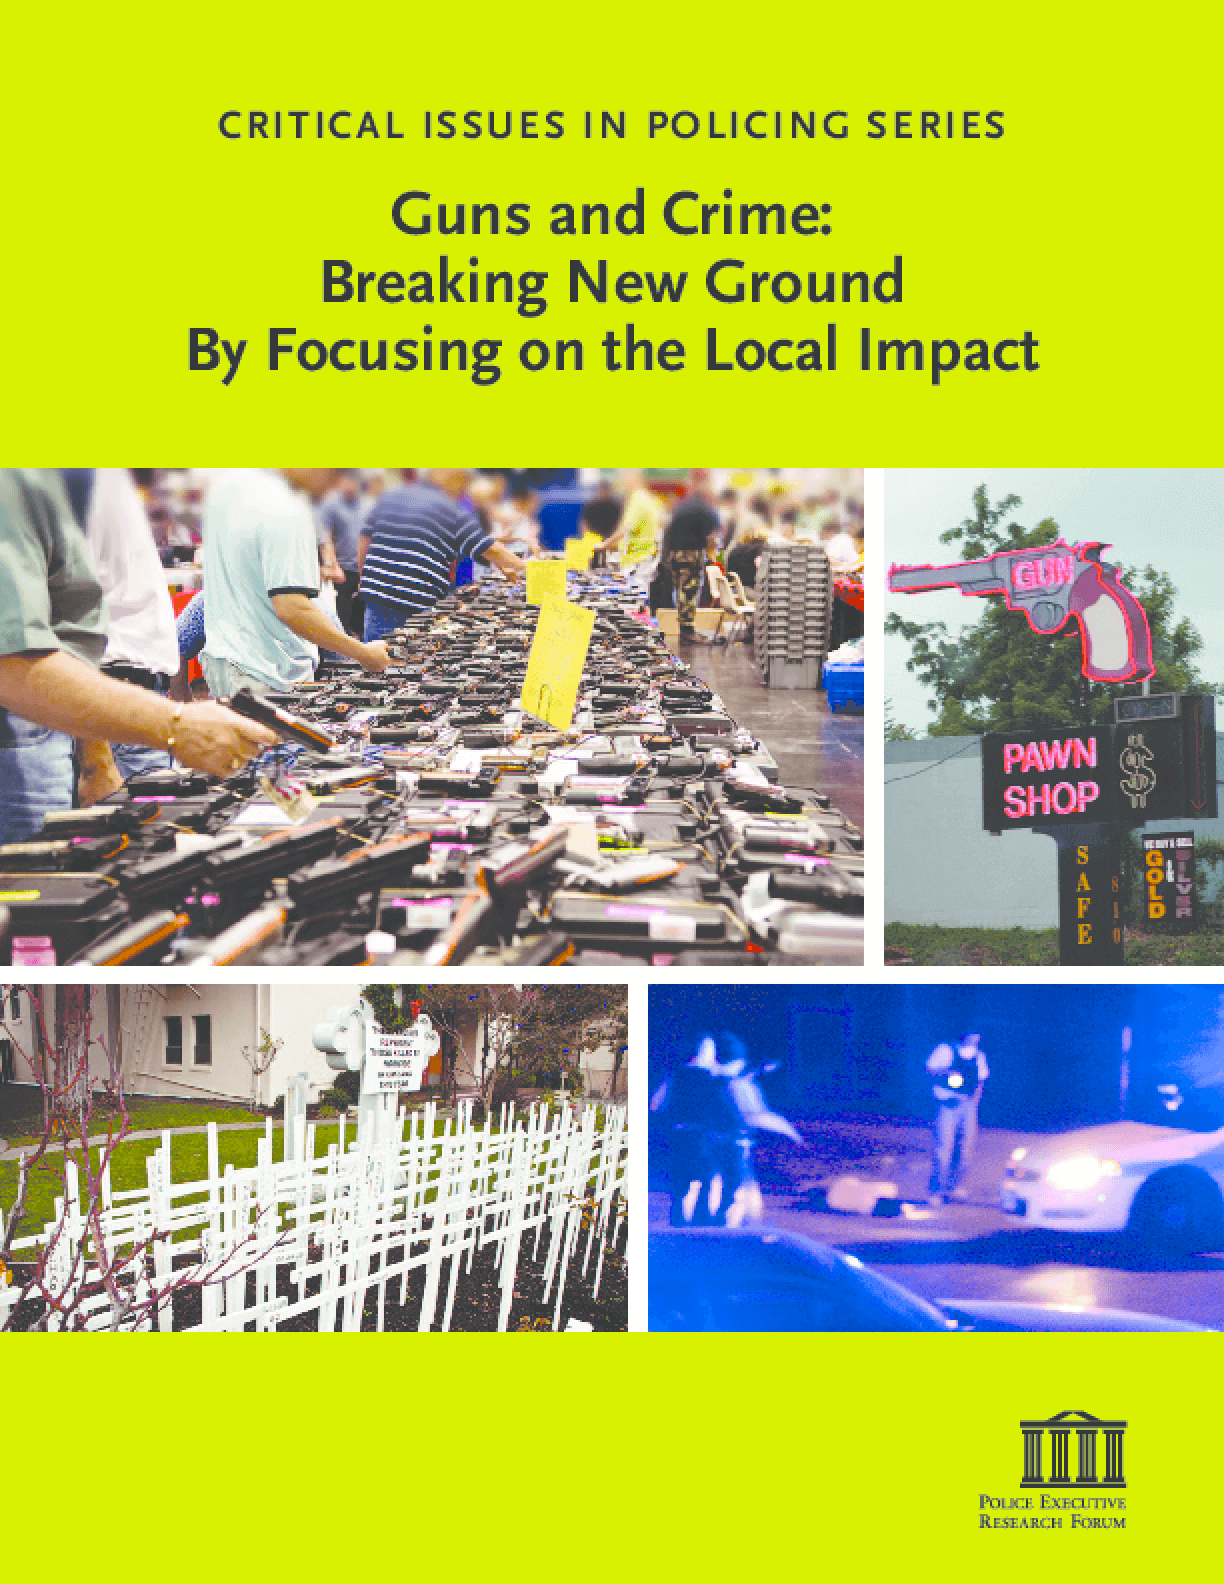 Guns and Crime: Breaking New Ground By Focusing on the Local Impact